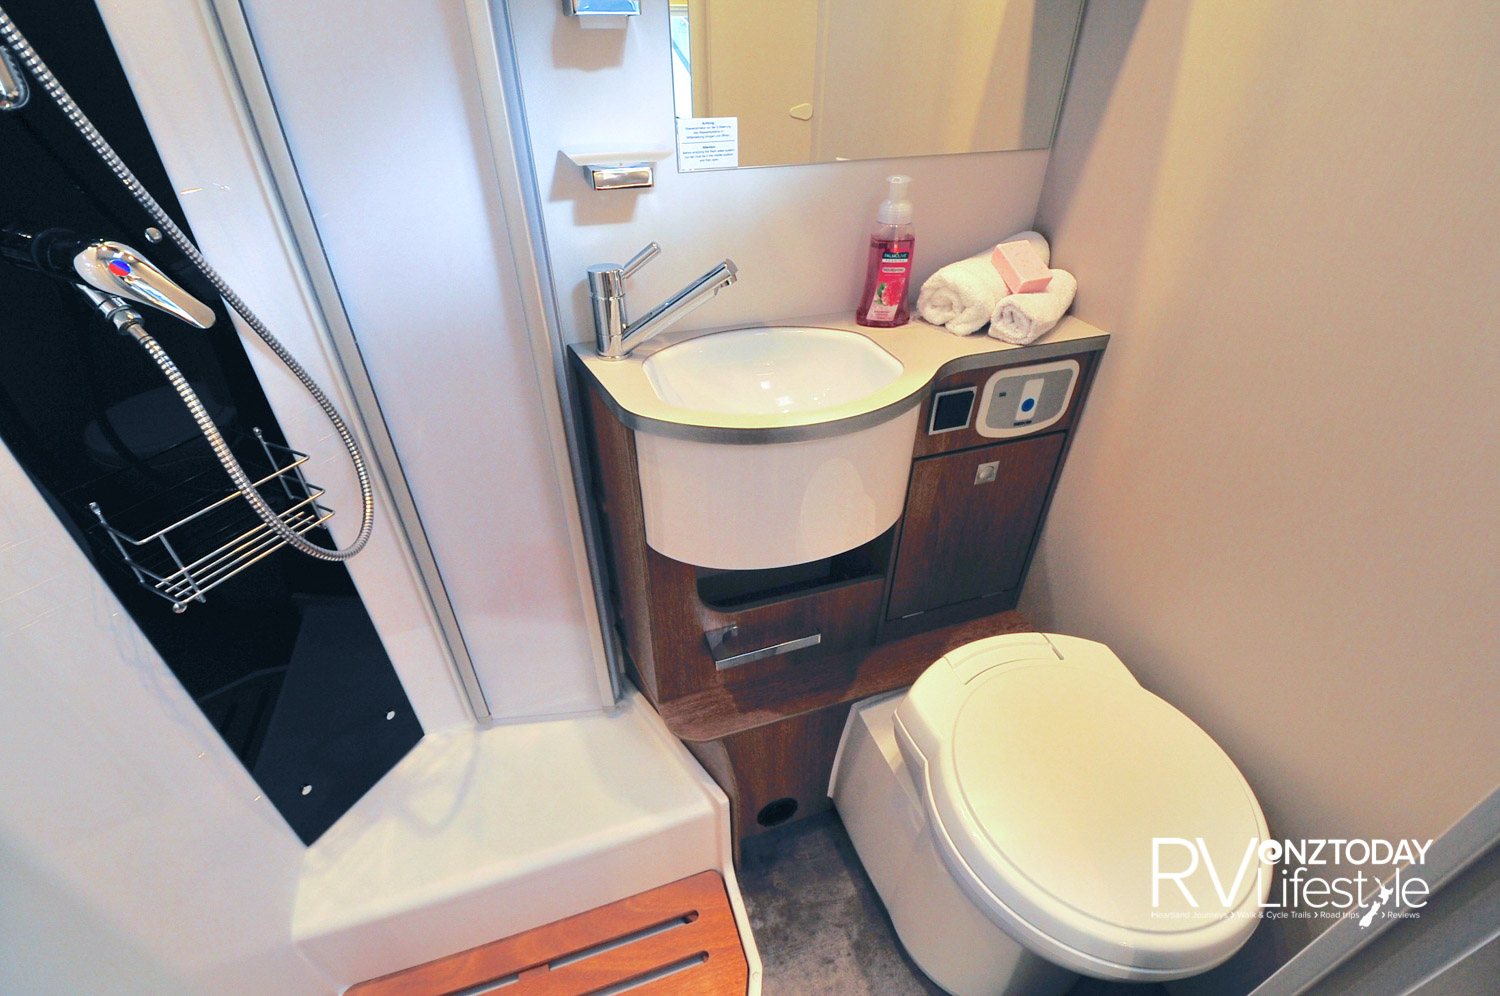 A compact bathroom, but it has it all with electric 12V flush pedestal cassette toilet, nifty vanity sink and storage, with mirror above. Separate shower box with concertina fold-back doors, adjustable showerhead, wooden tray for shower base